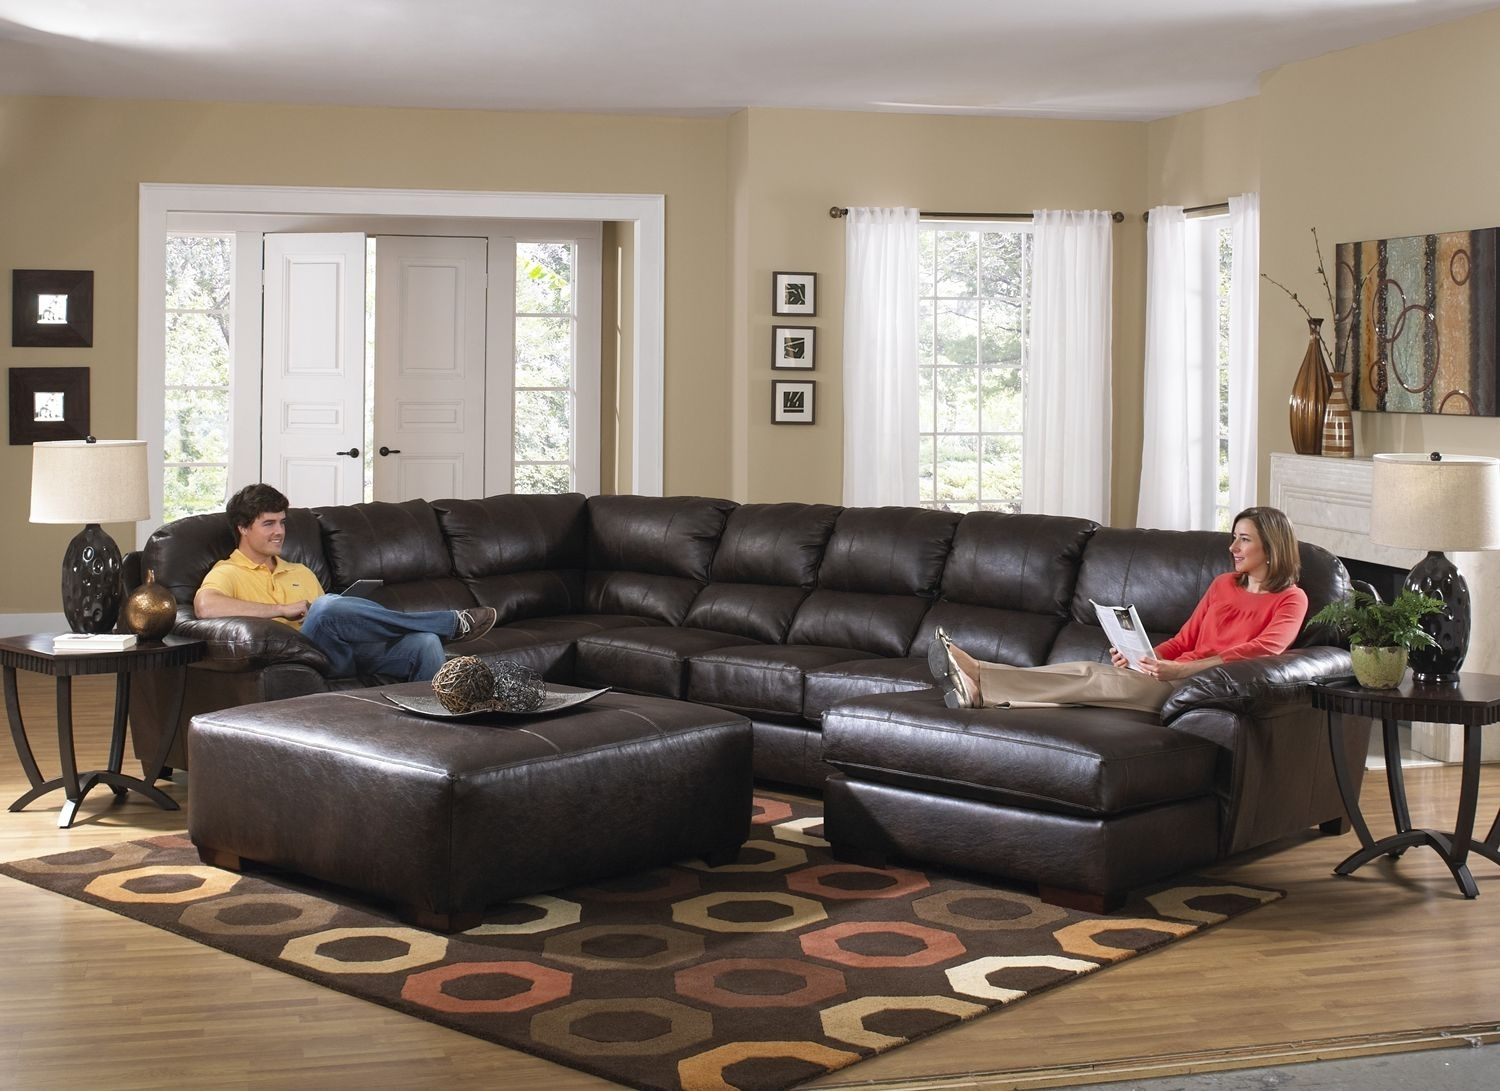 Lawson Godiva U Shape Sectional Sofa W/ Chaise In Chocolate Bonded Throughout Sectionals With Oversized Ottoman (View 4 of 15)